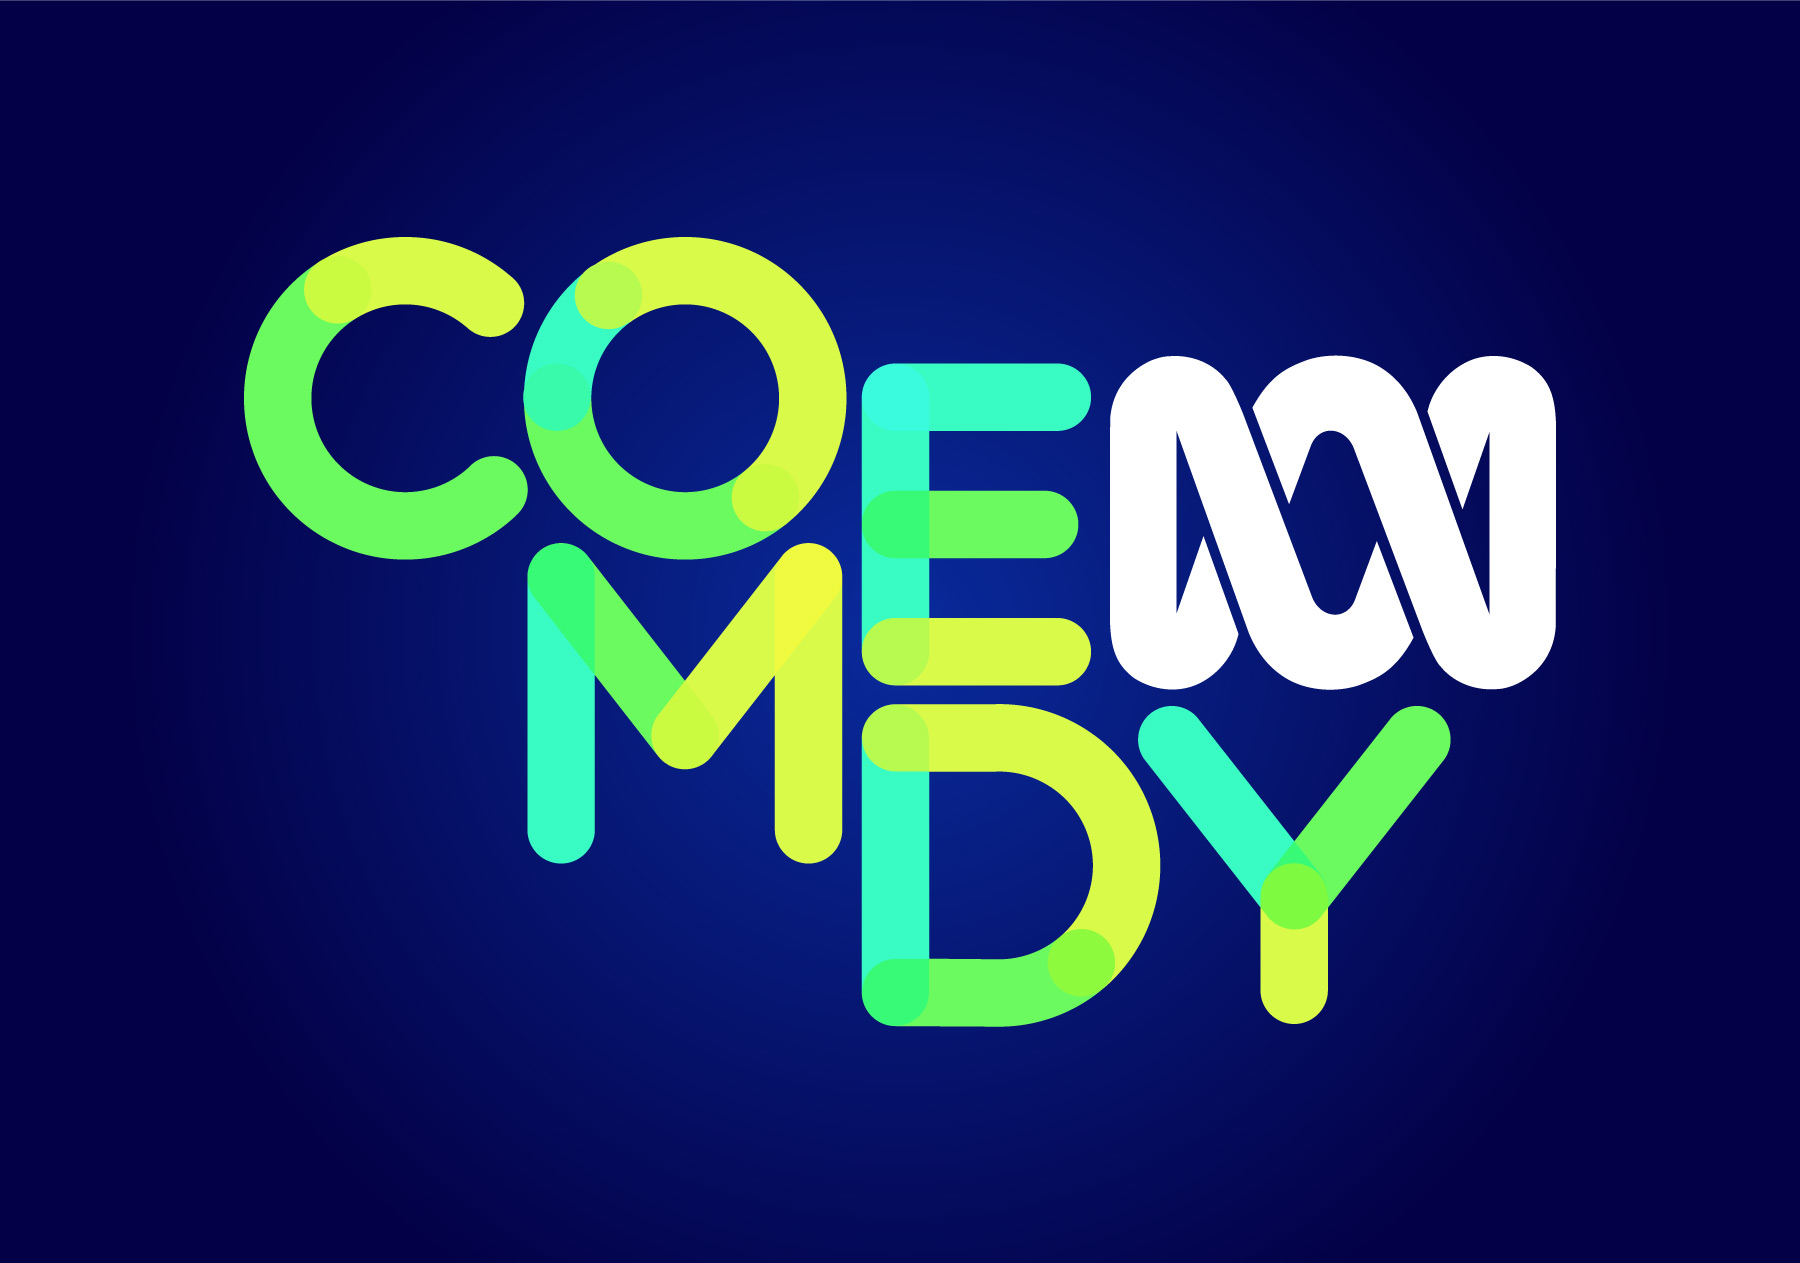 New ABC Comedy logo in detail (reversed)